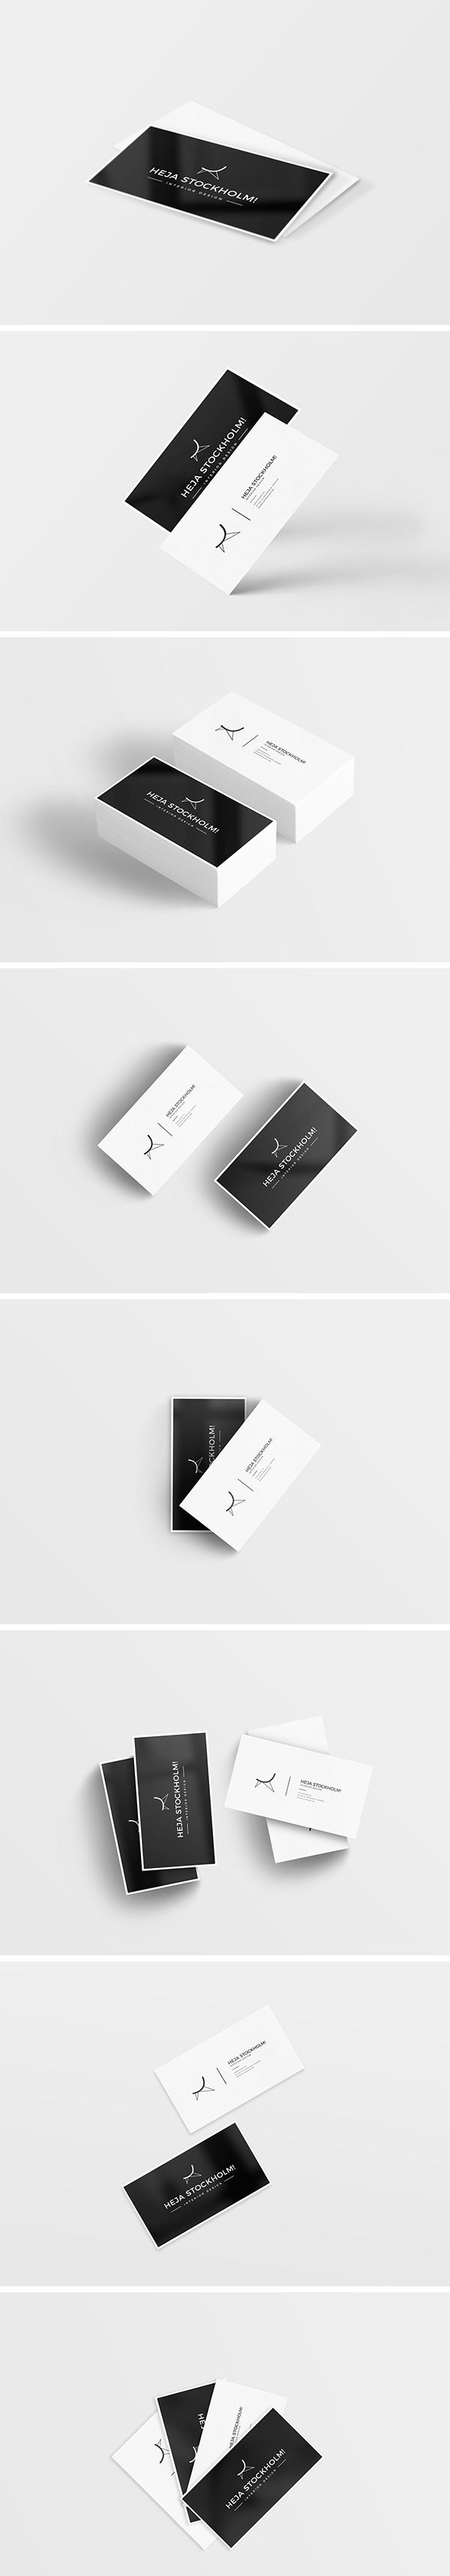 17 best images about business card on pinterest cards black 21 psd free business card mock up templates august 2015 edition reheart Images